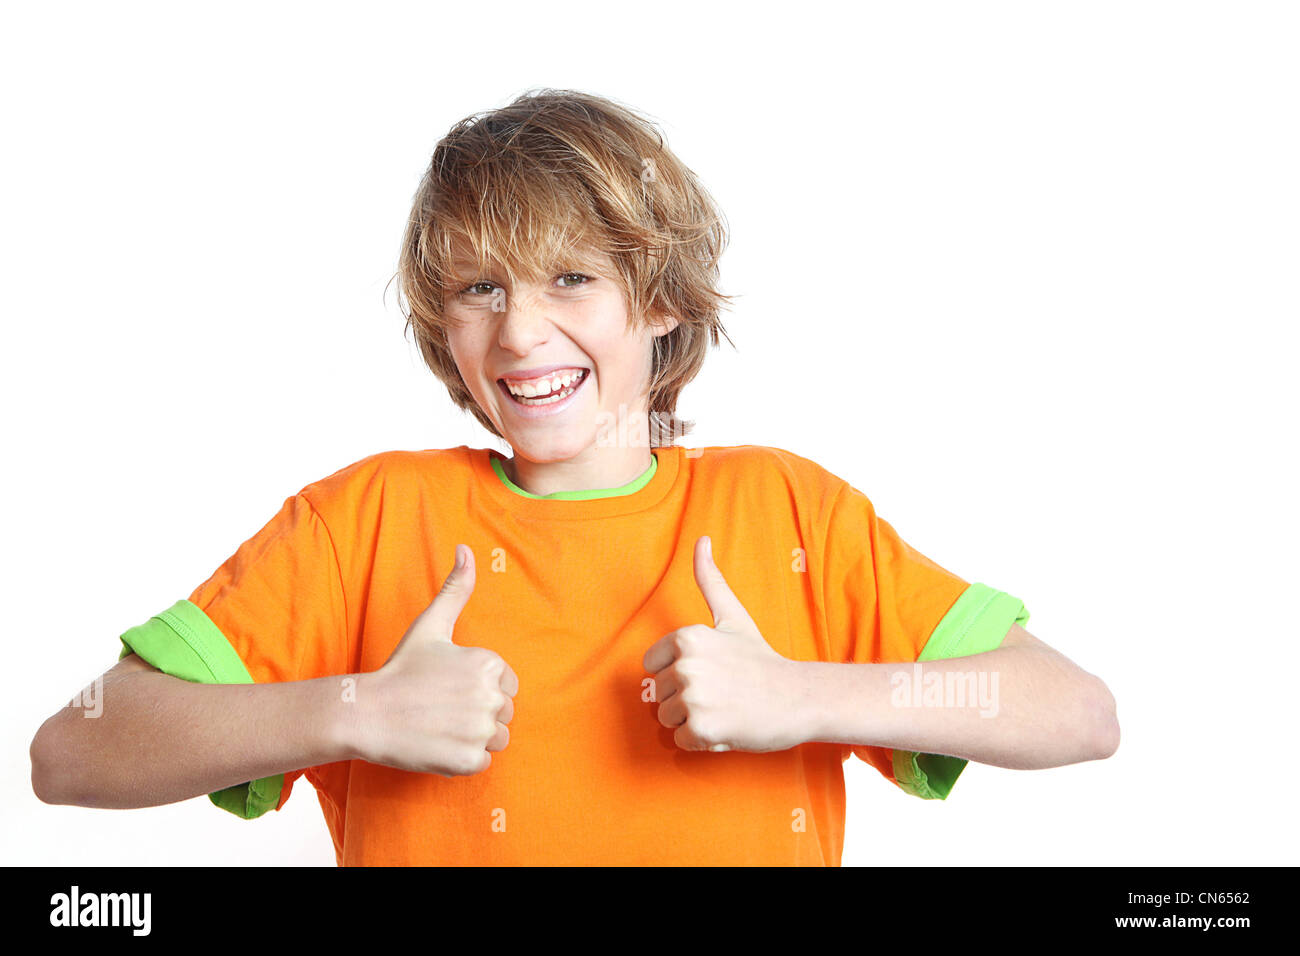 happy child with thumbs up for success Stock Photo